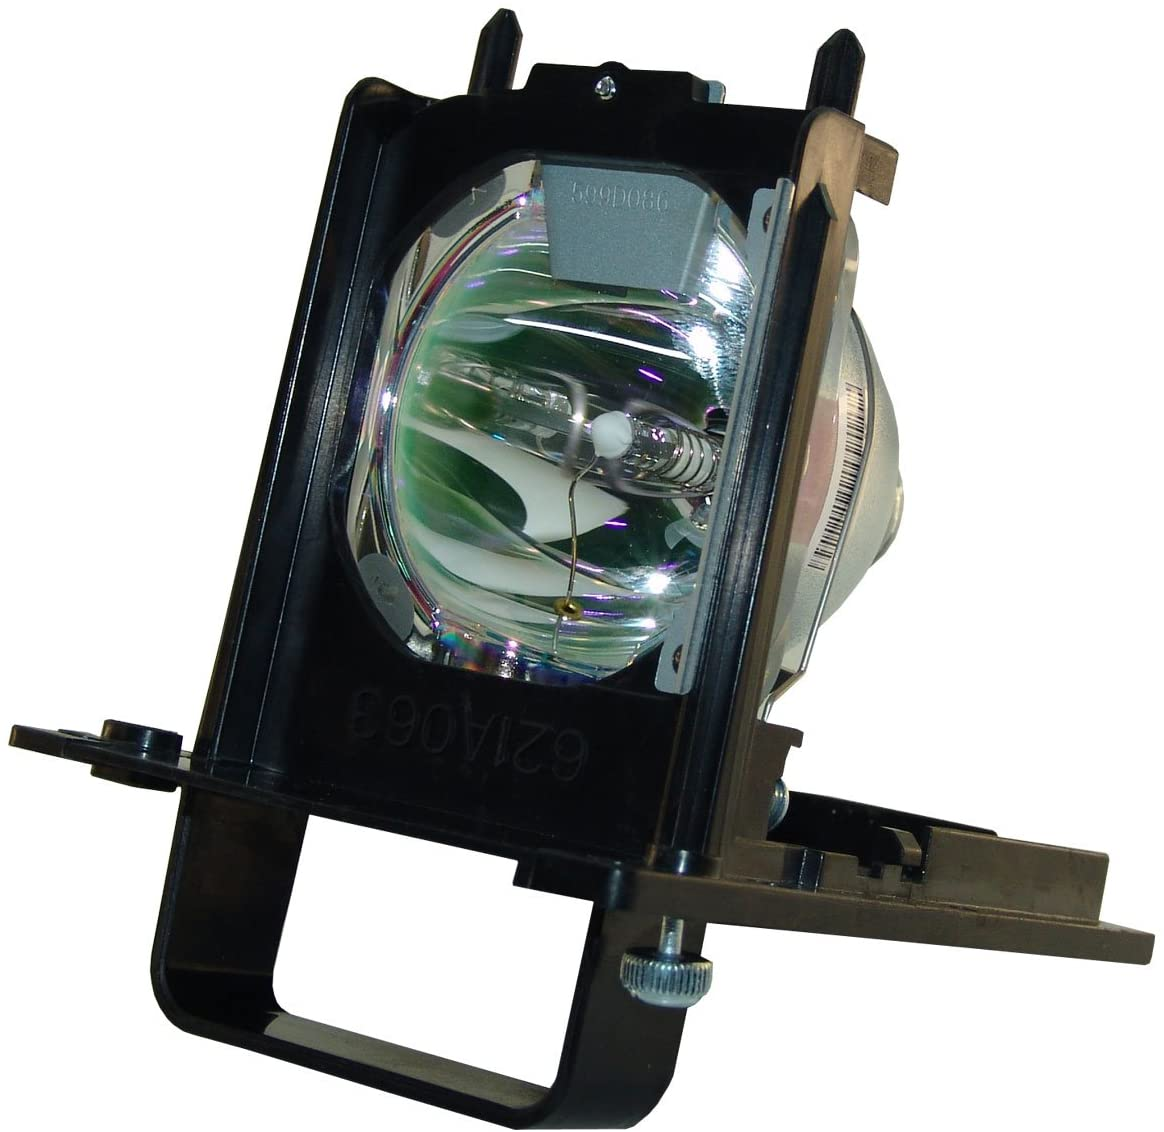 AuraBeam Economy 915B455012 / 915B455A12 for Mitsubishi WD-82642 DLP HD Rear Projection Television Replacement Lamp/Bulb with Housing/Enclosure/Cage